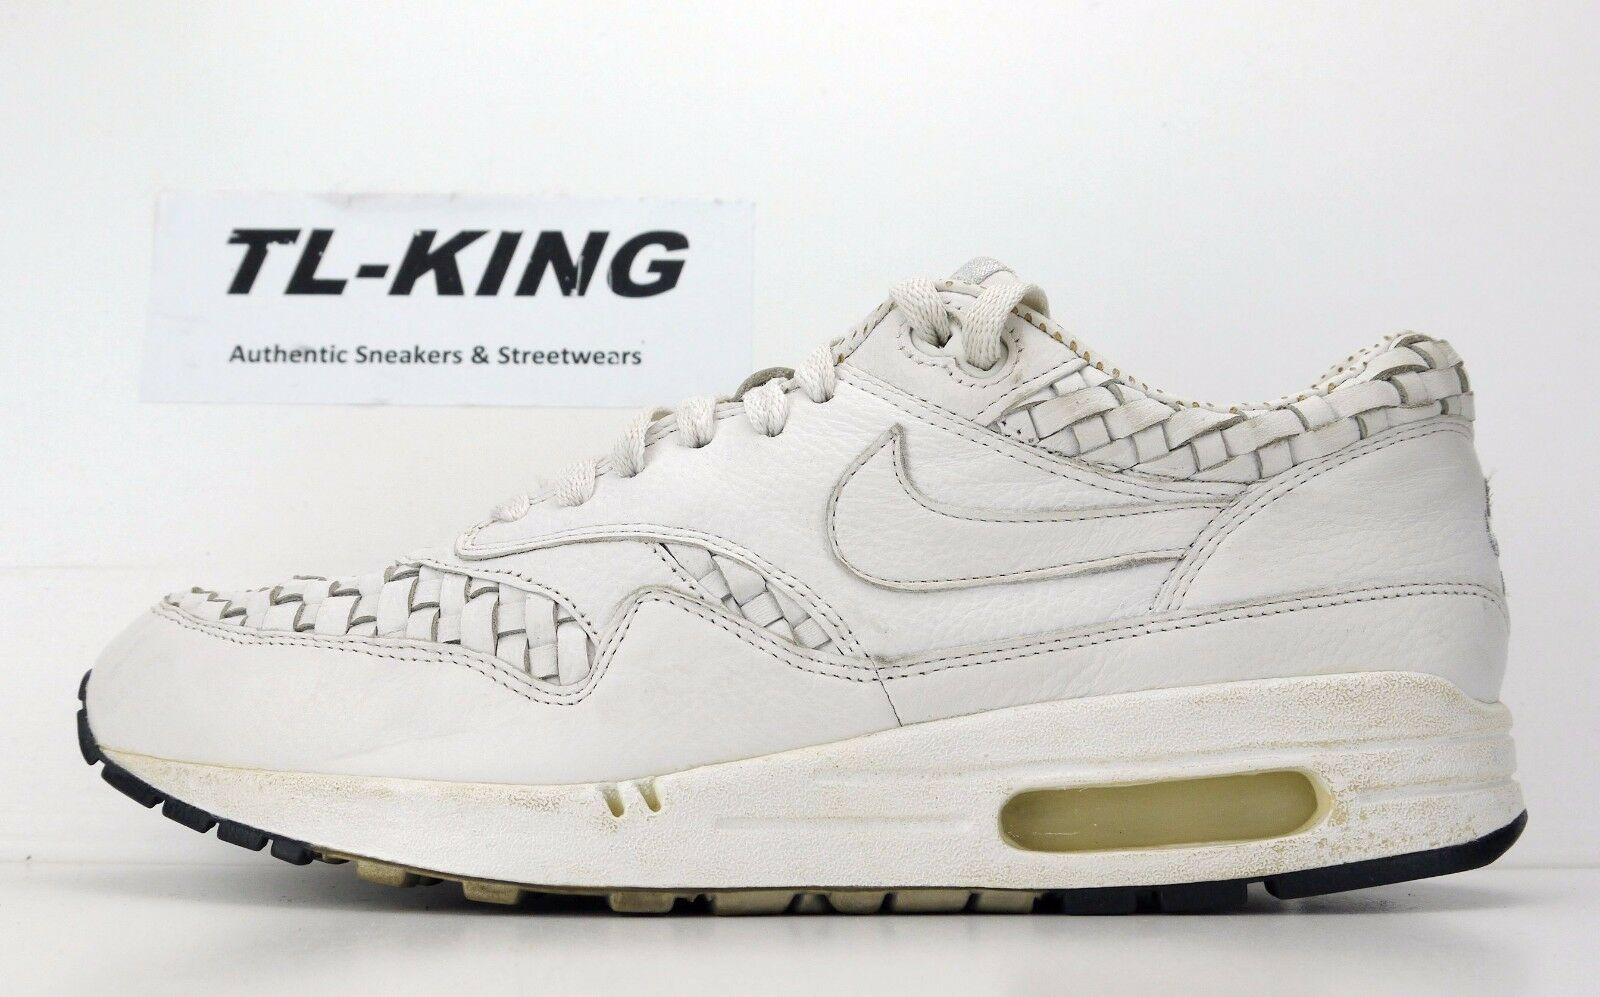 2008 Nike Air Max 1 Premium SP Woven Leather Japan 314252 112 size 9 USED